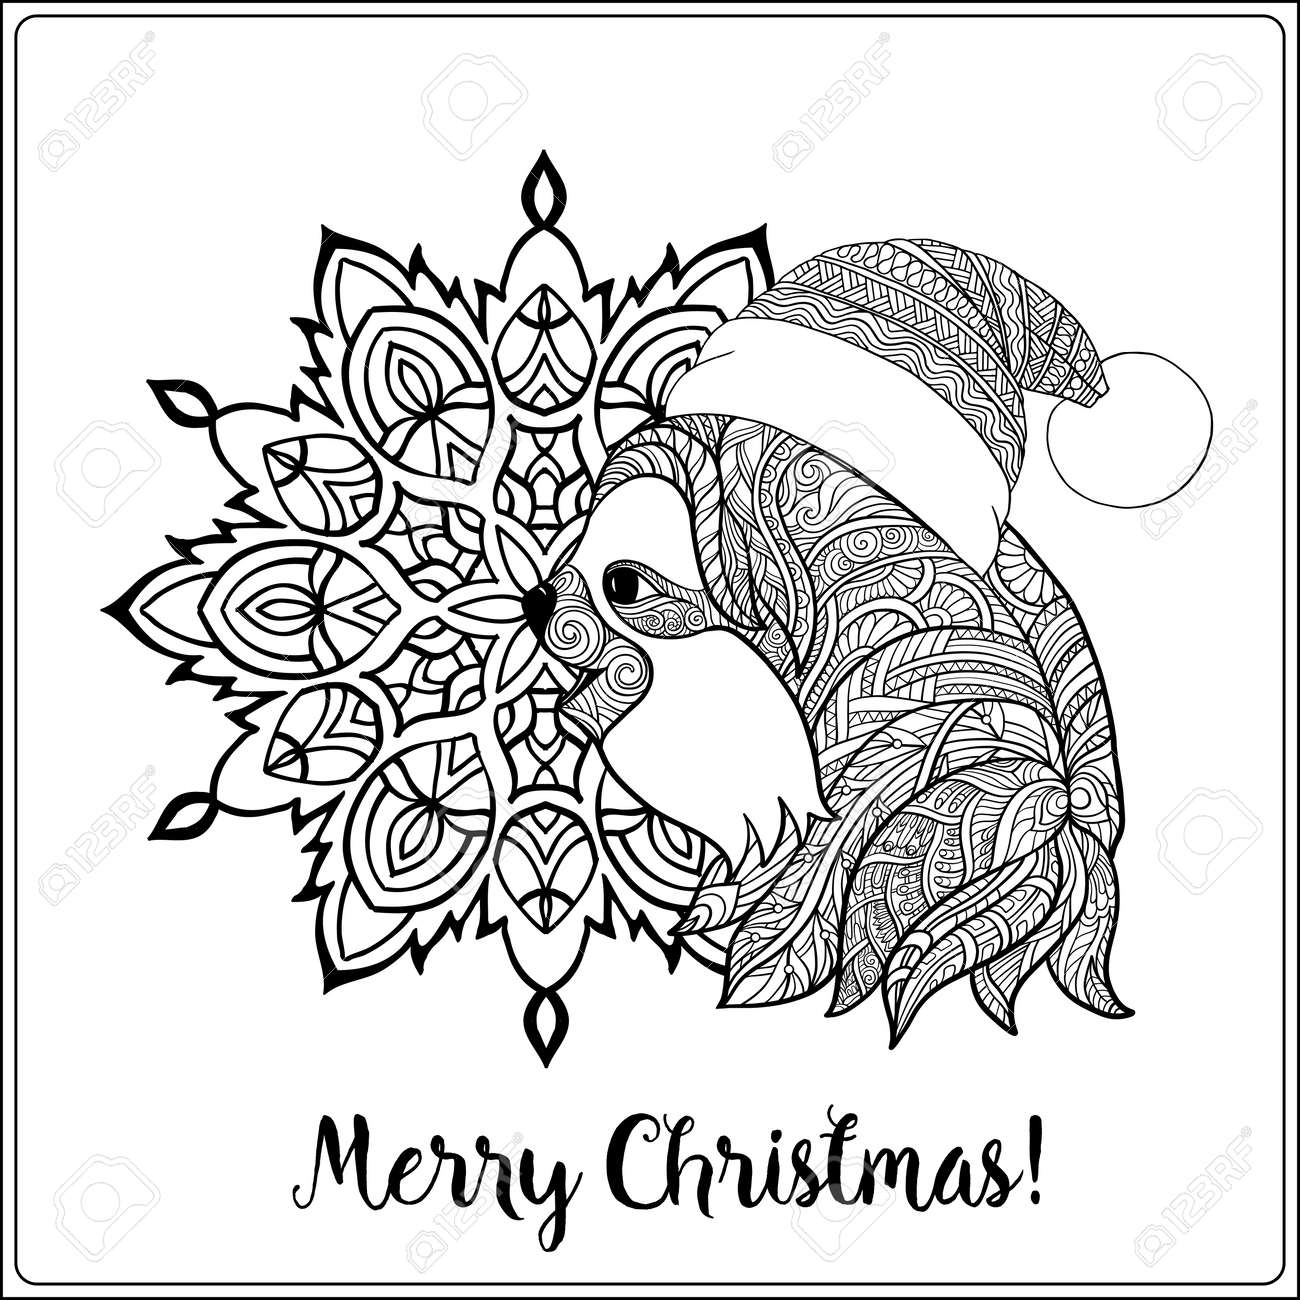 Decorative Patterned Sloth In The Hat Of Santa Claus On A Snowflake ...